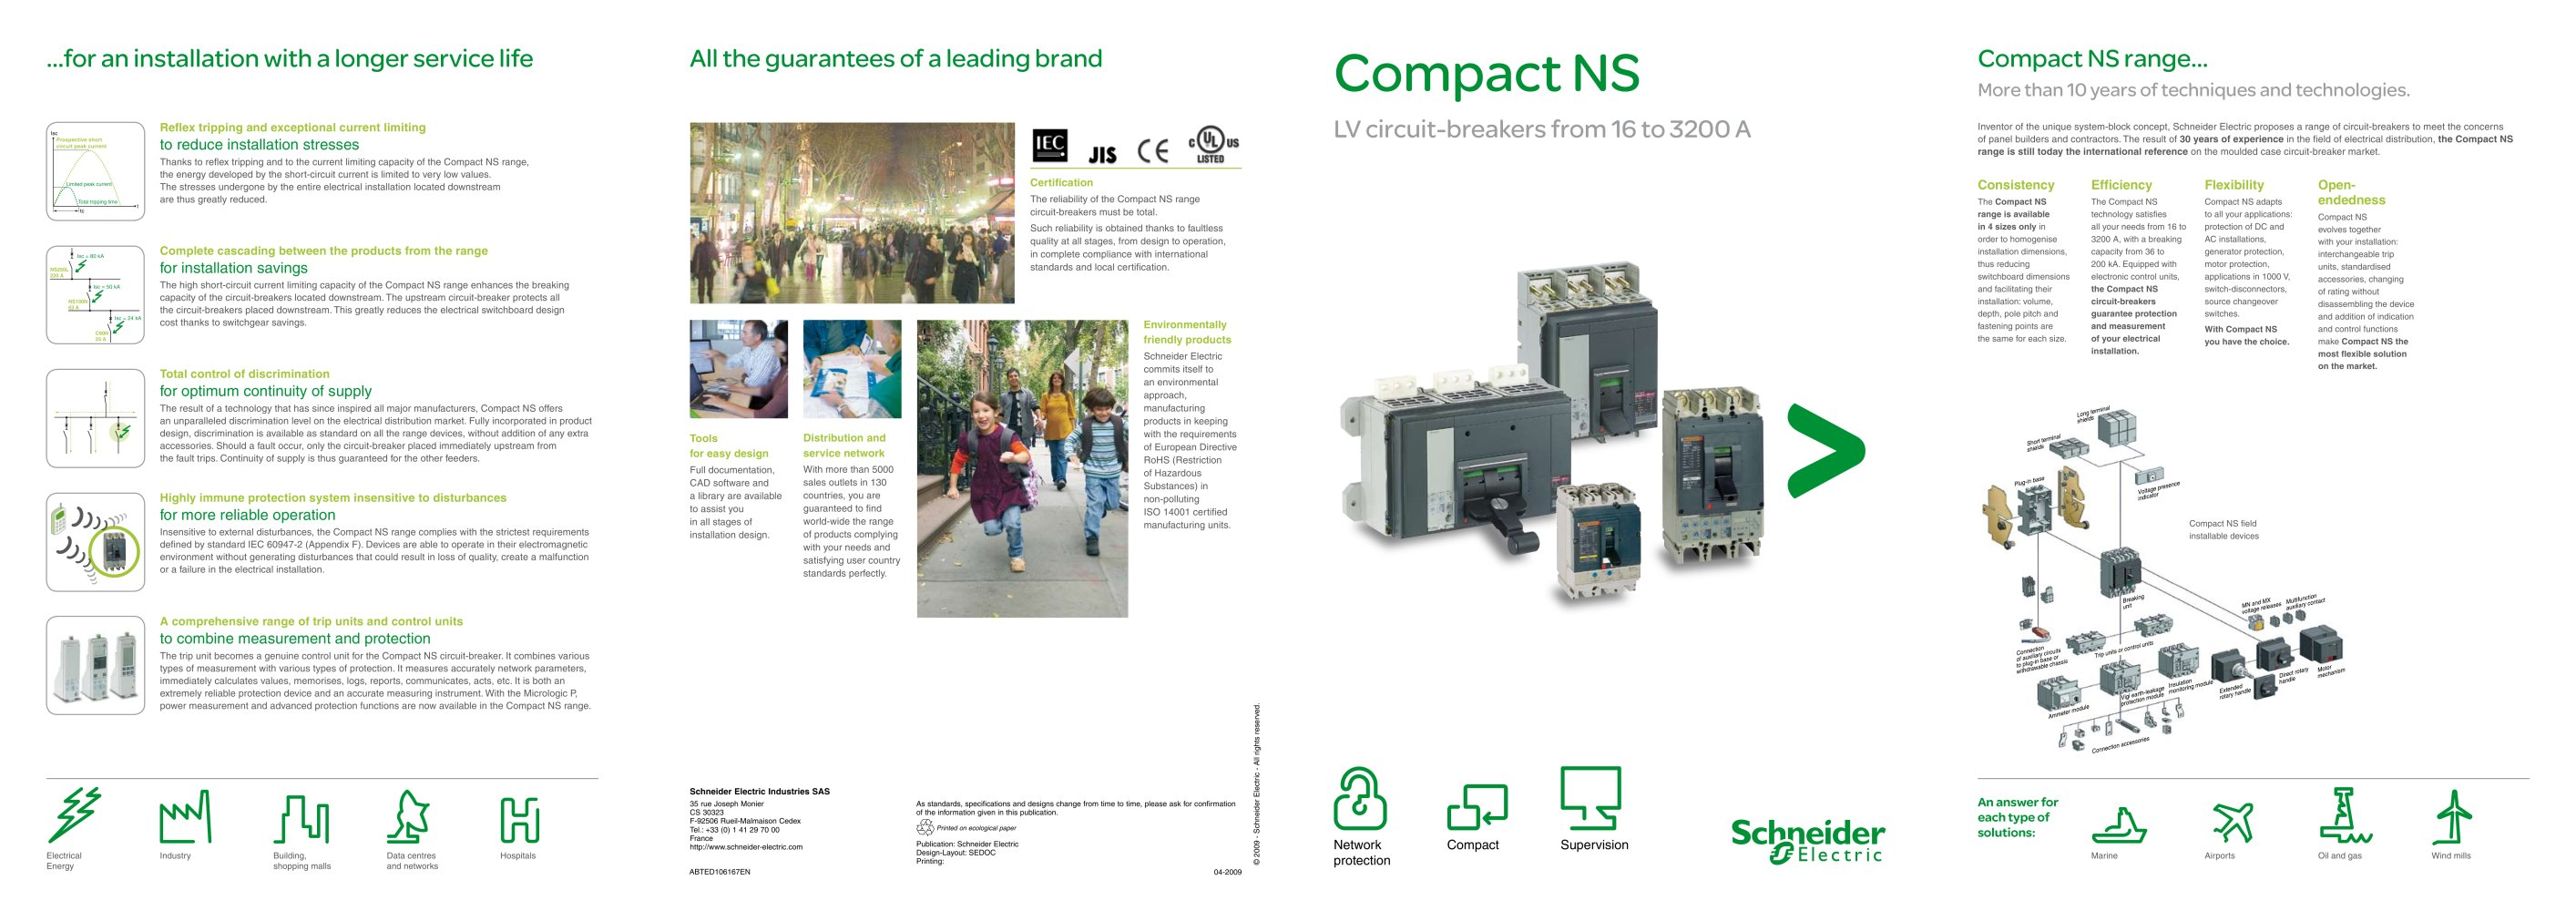 Compact NS |LV circuit-breakers from 16 to 3200 A - Schneider ...